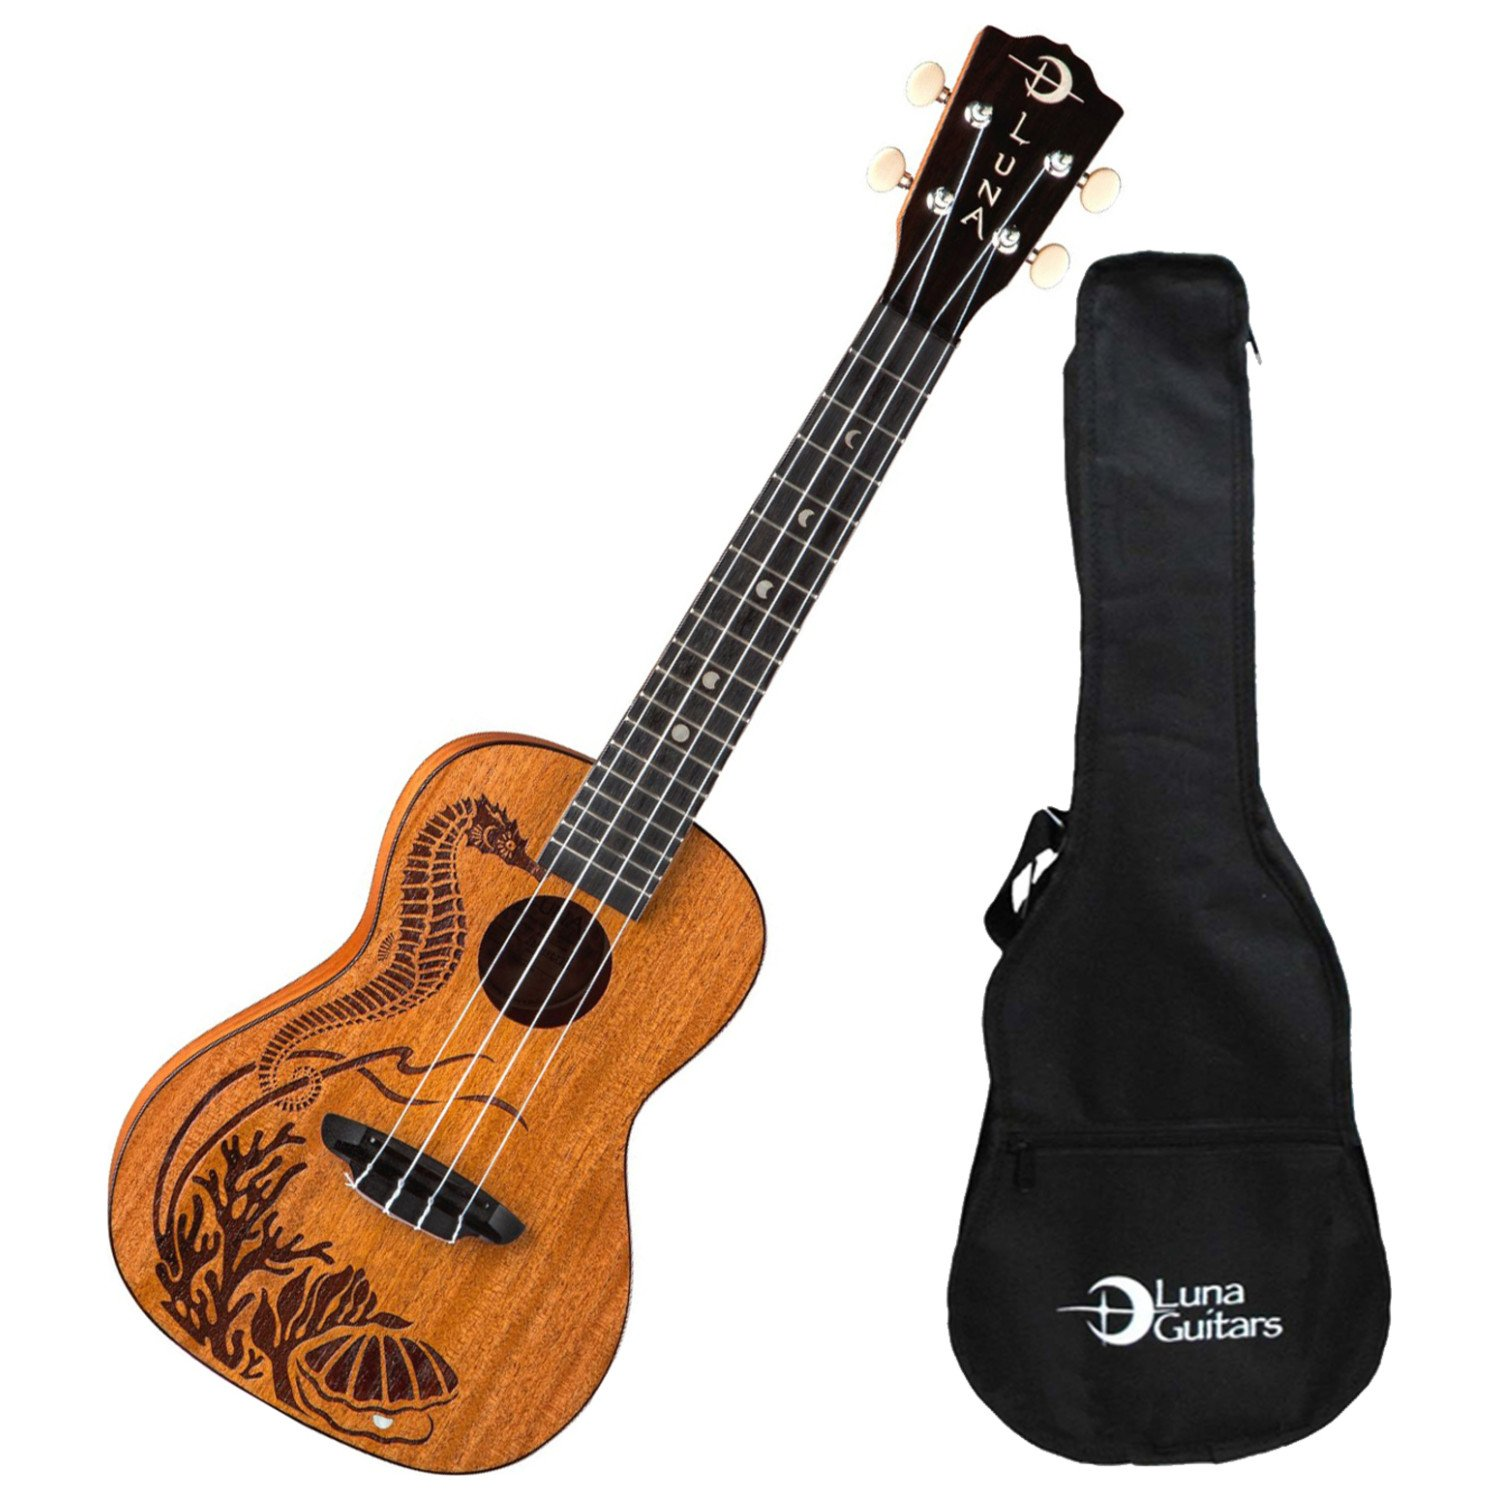 Luna UKEPEARL Seahorse Etched Pearl Inlay Concert Body Ukulele, Rosewood Fingerboard with Gig Bag, Satin by Luna Guitars